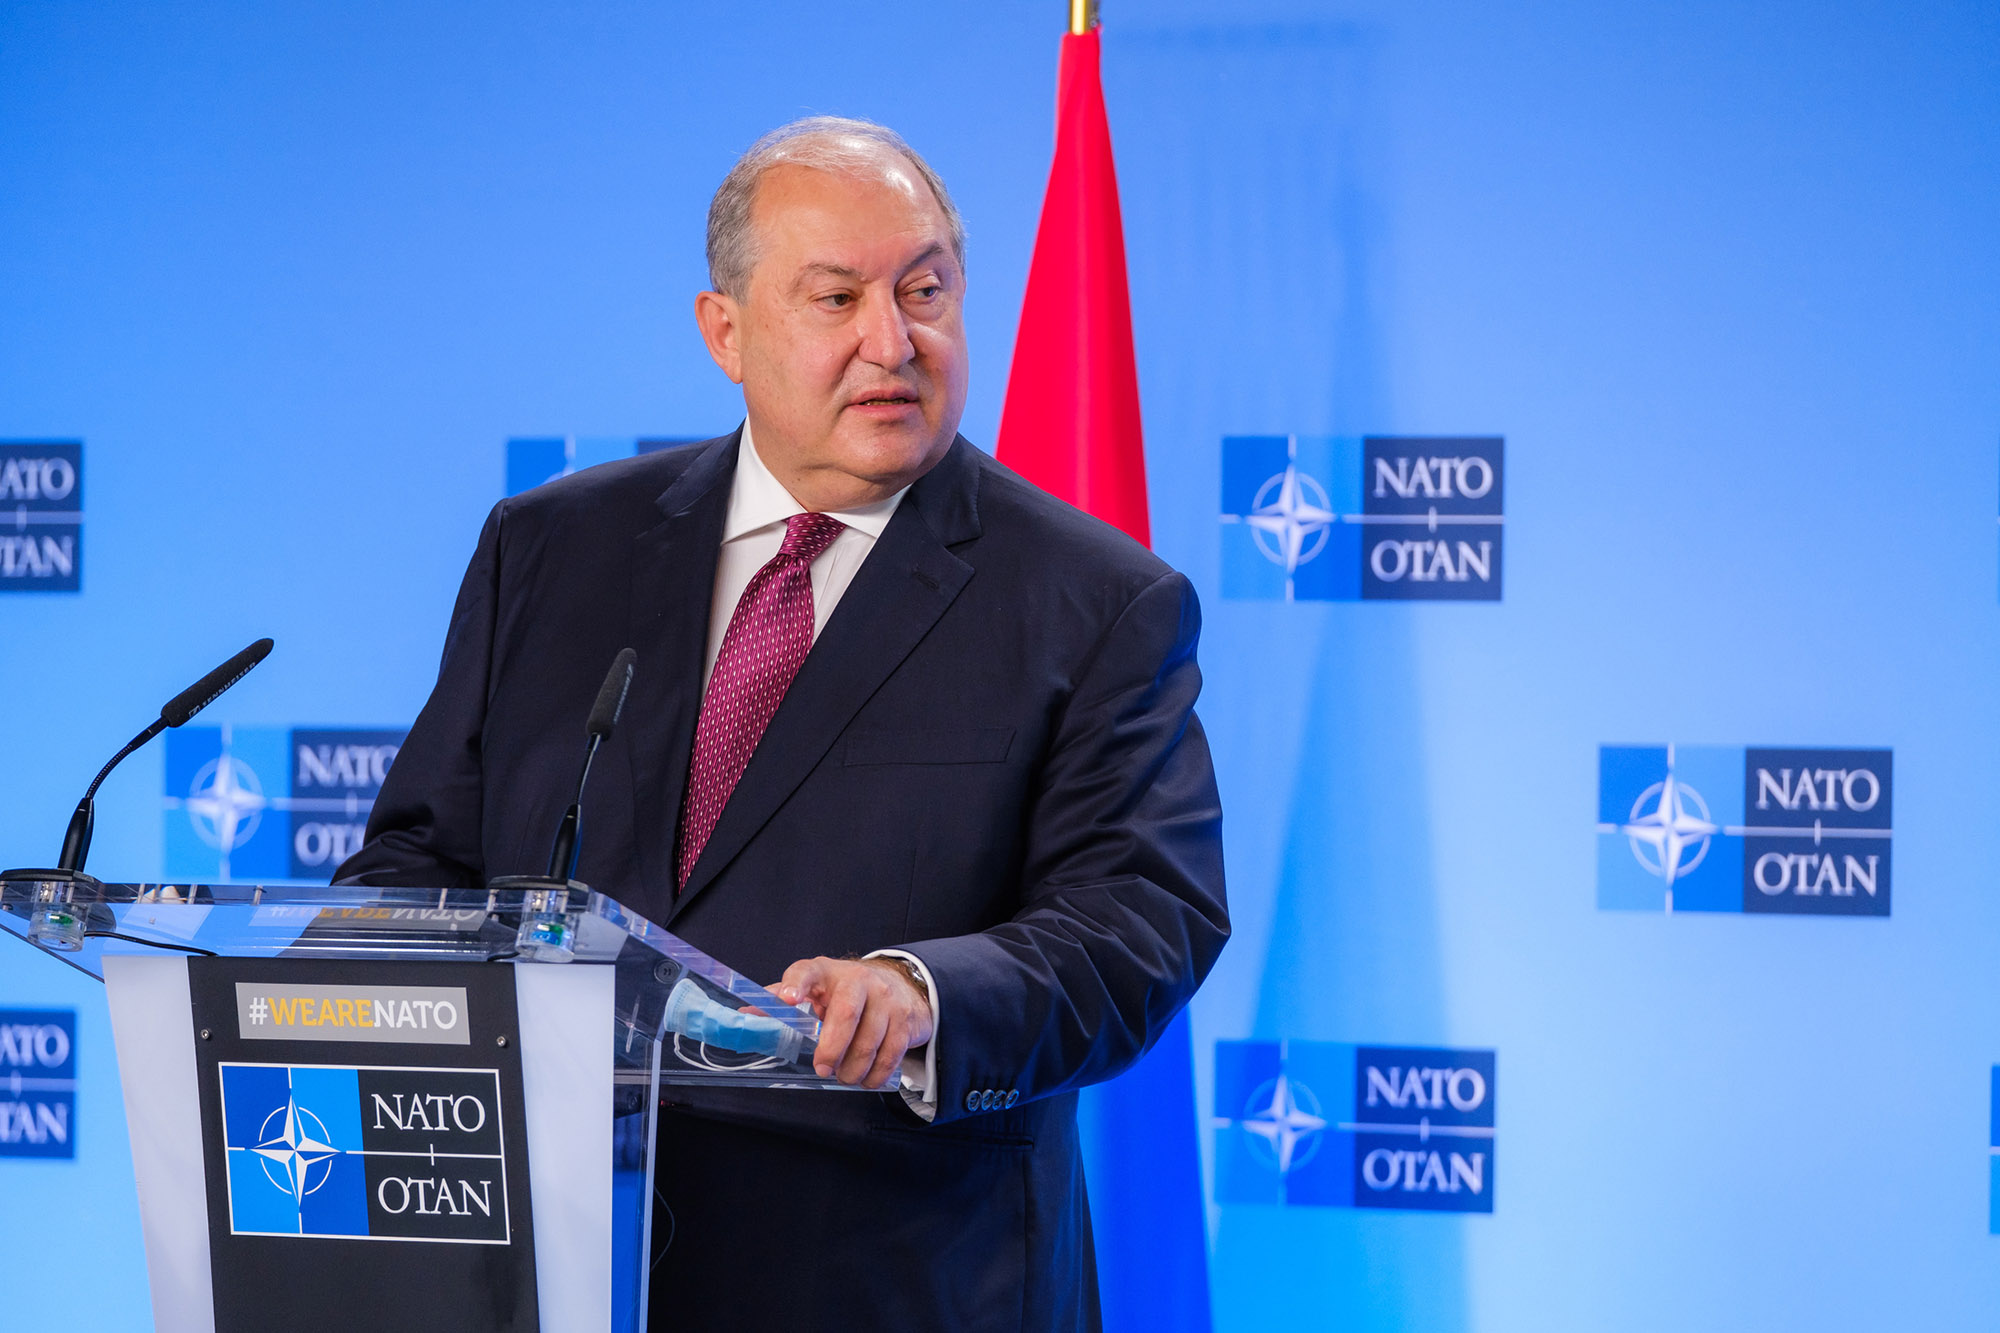 President of Armenia Armen Sarkissian attends a press conference in Brussels, Belgium on October 21, 2020.